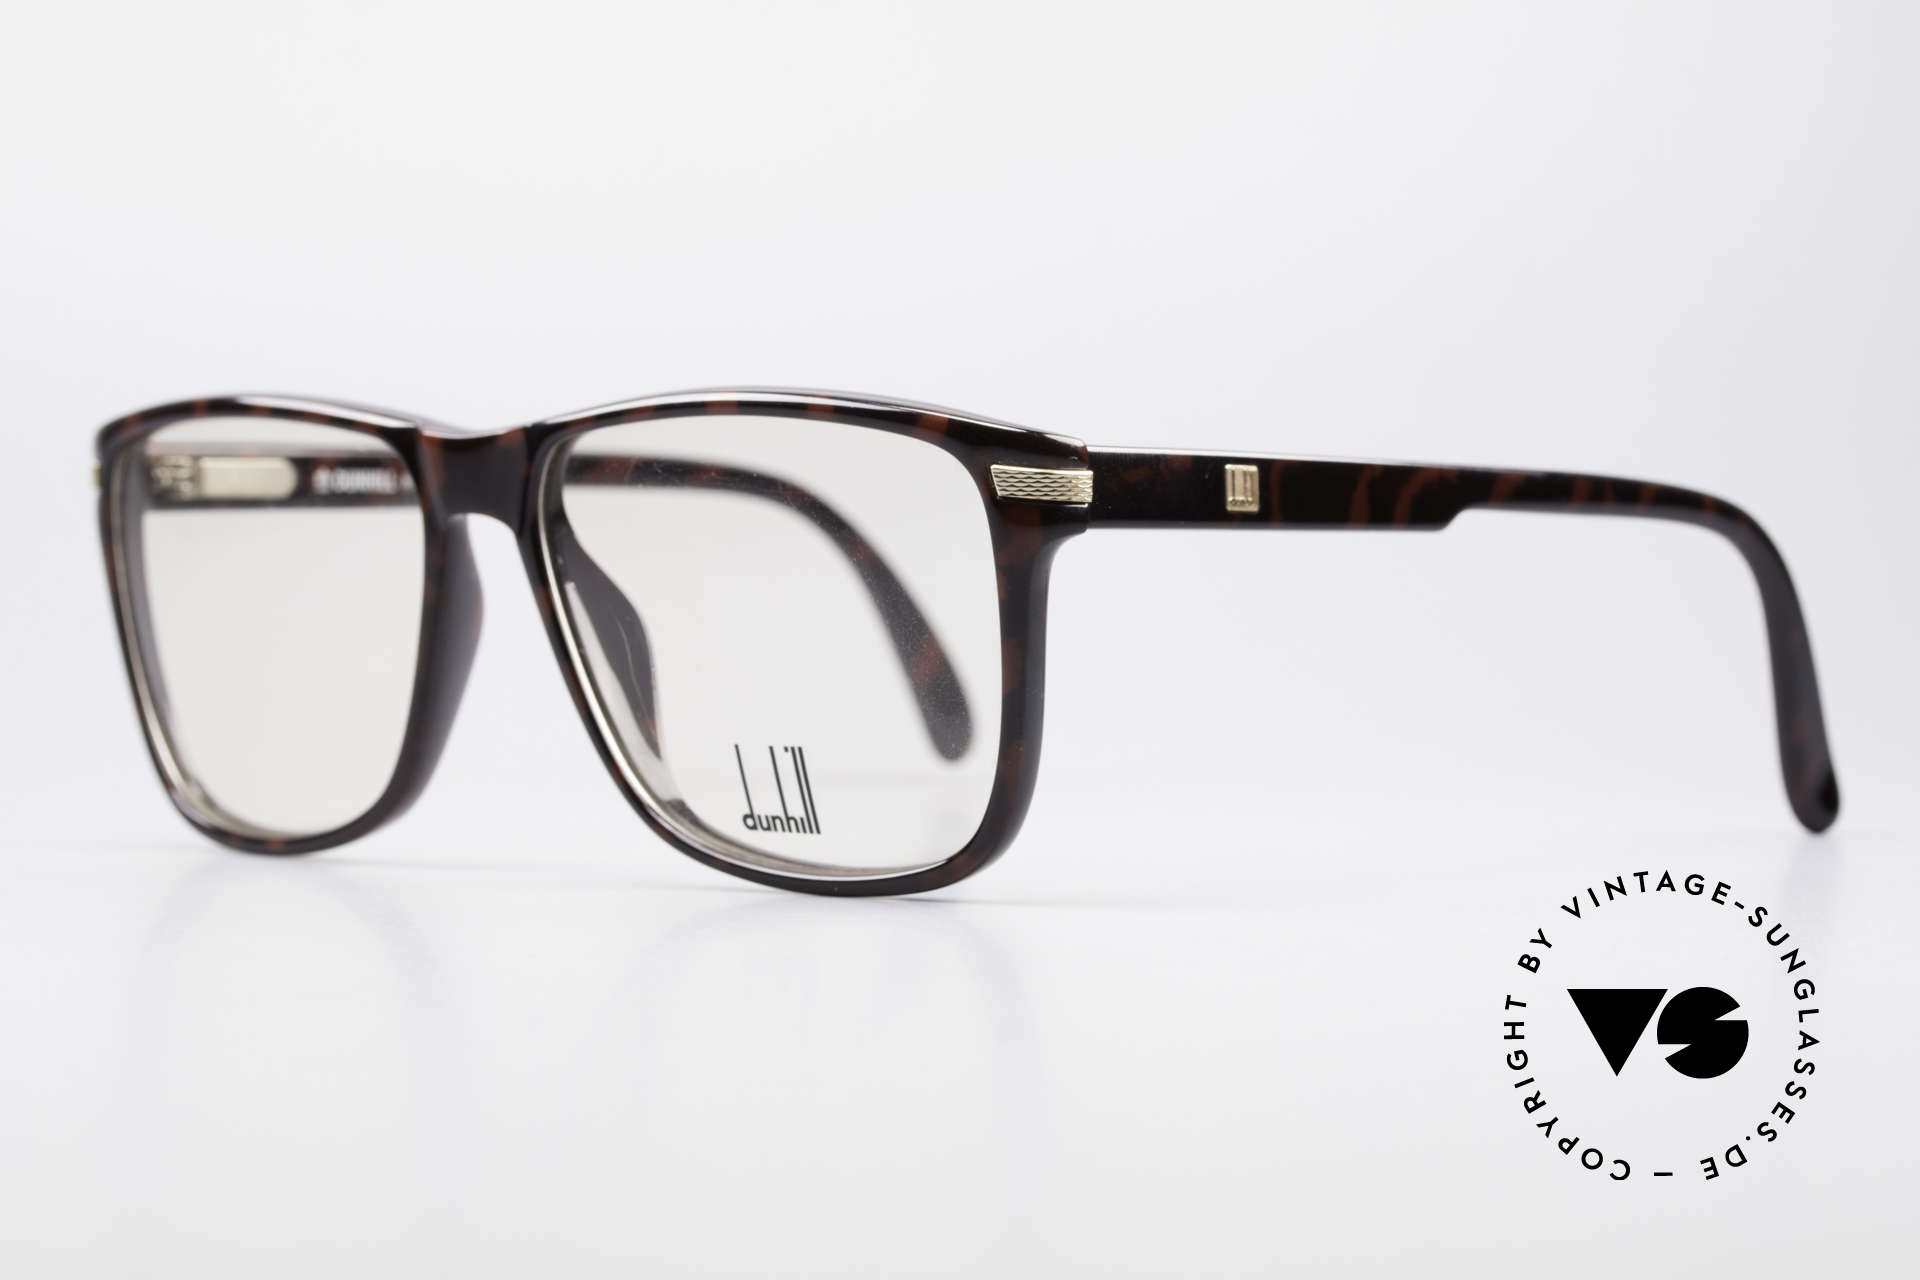 Dunhill 6055 Johnny Depp Nerd Style Frame, finest materials; frame made by Optyl (Germany), Made for Men